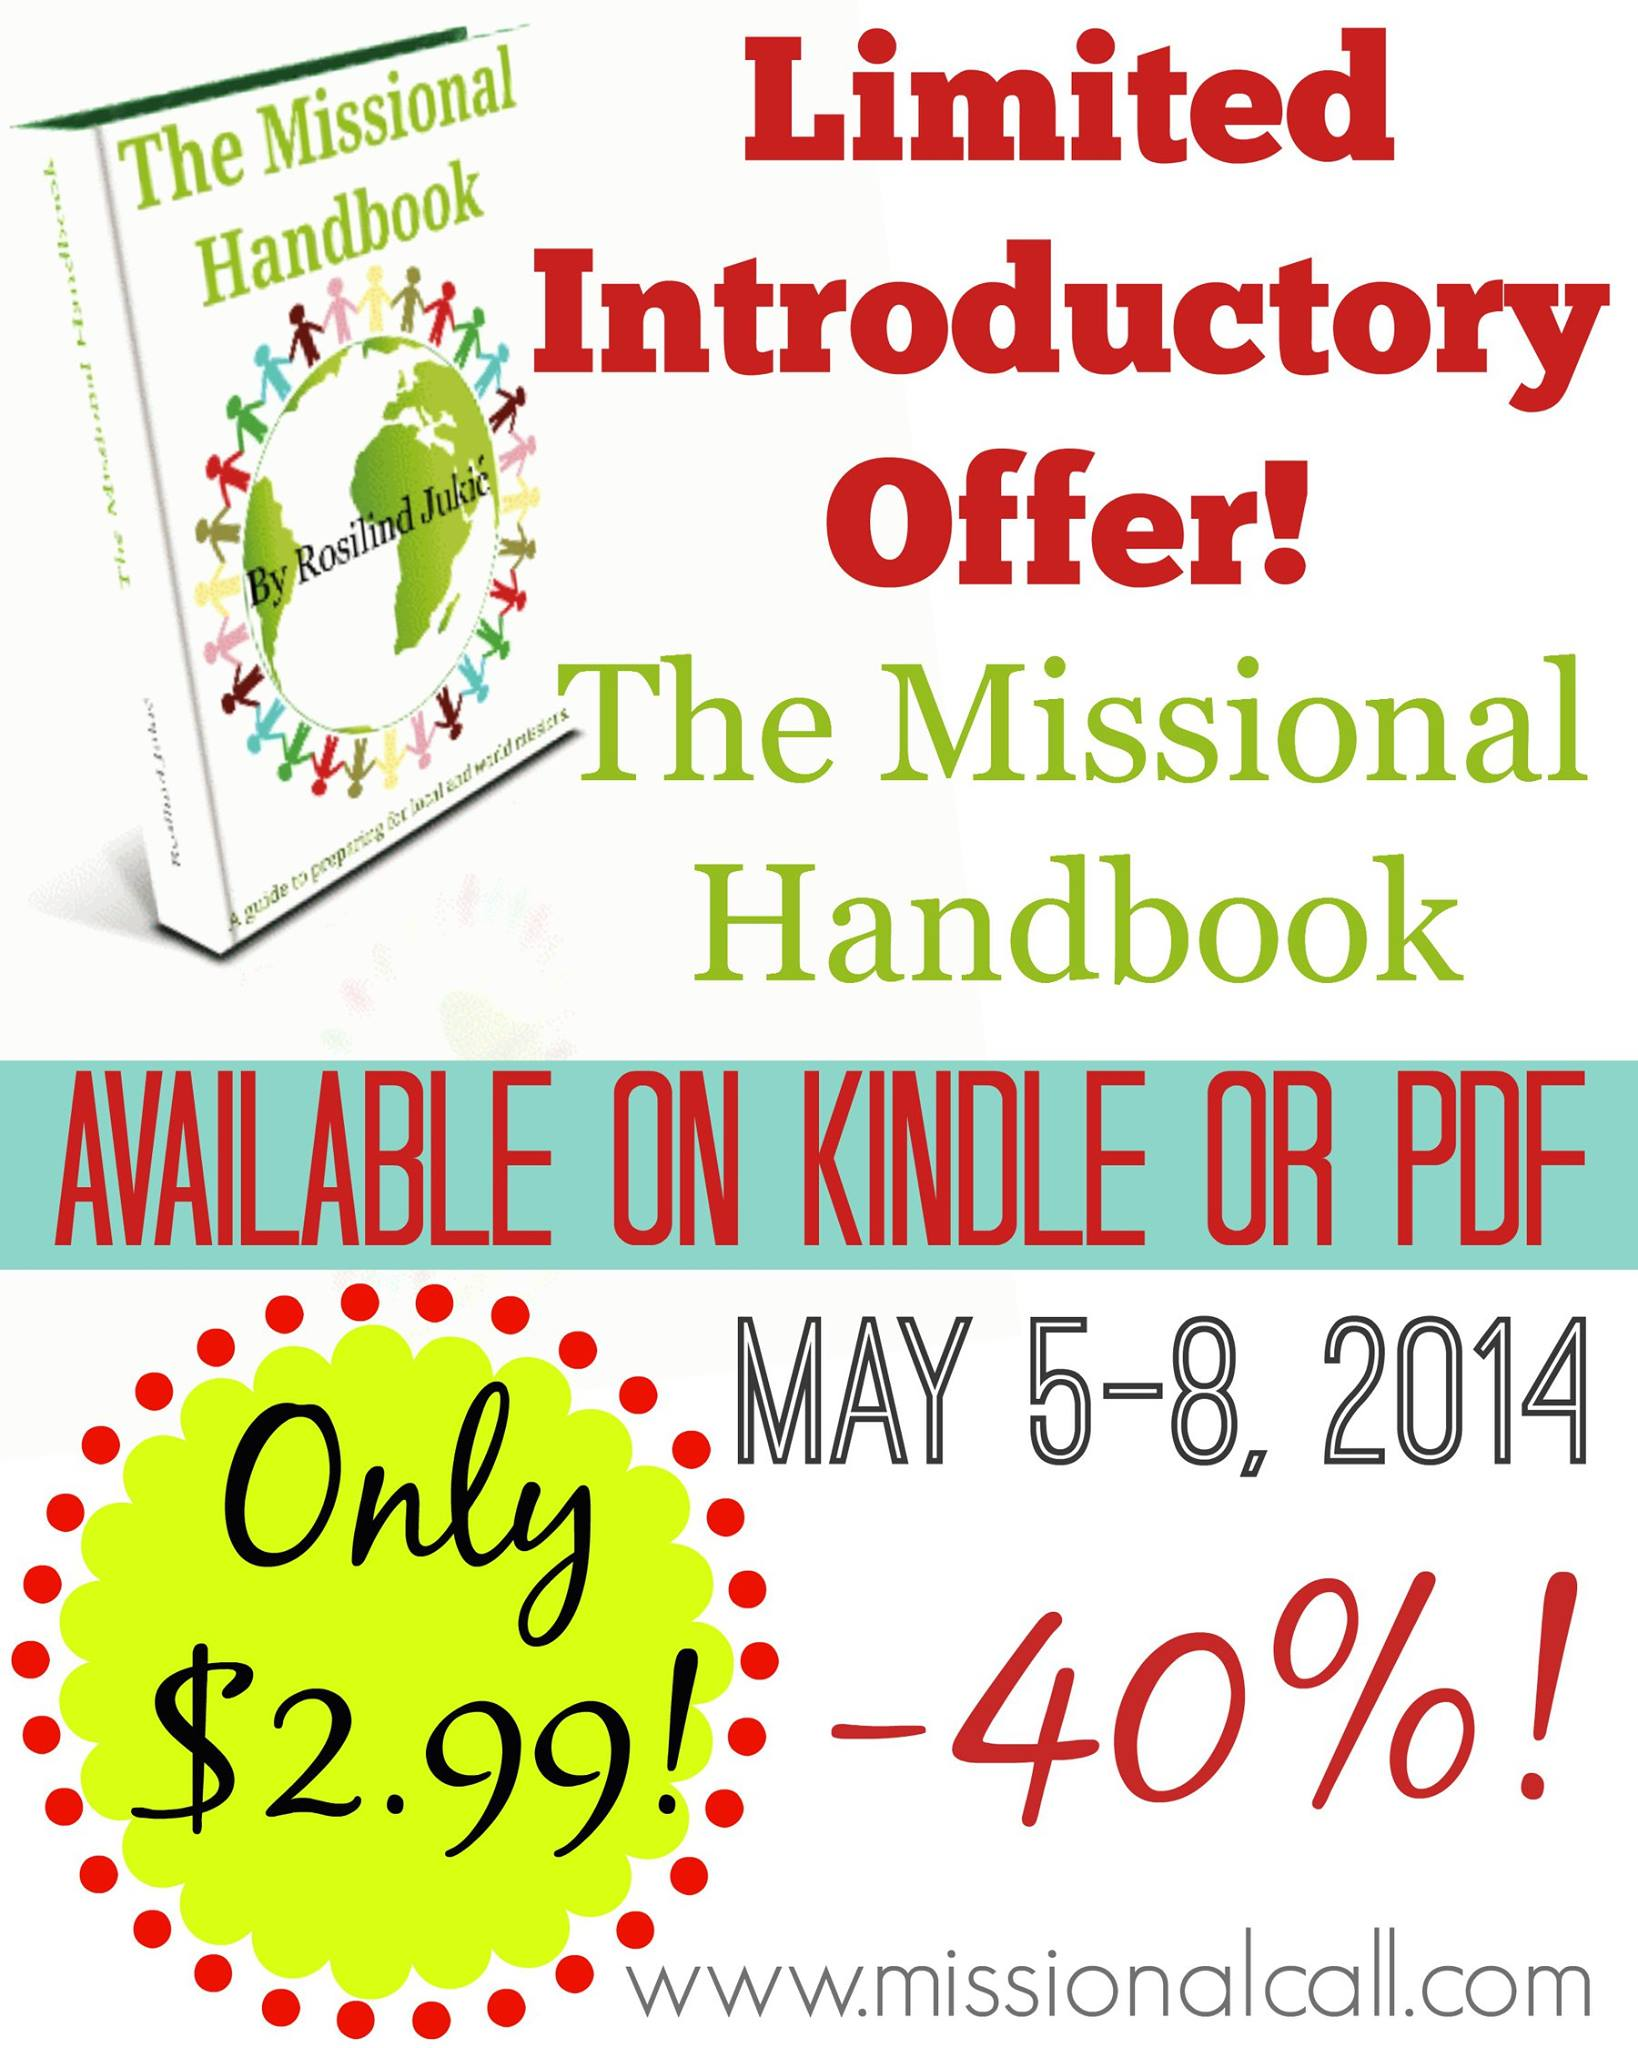 The Missional Handbook Review + GIVEAWAY + WholeHearted Wednesday #90